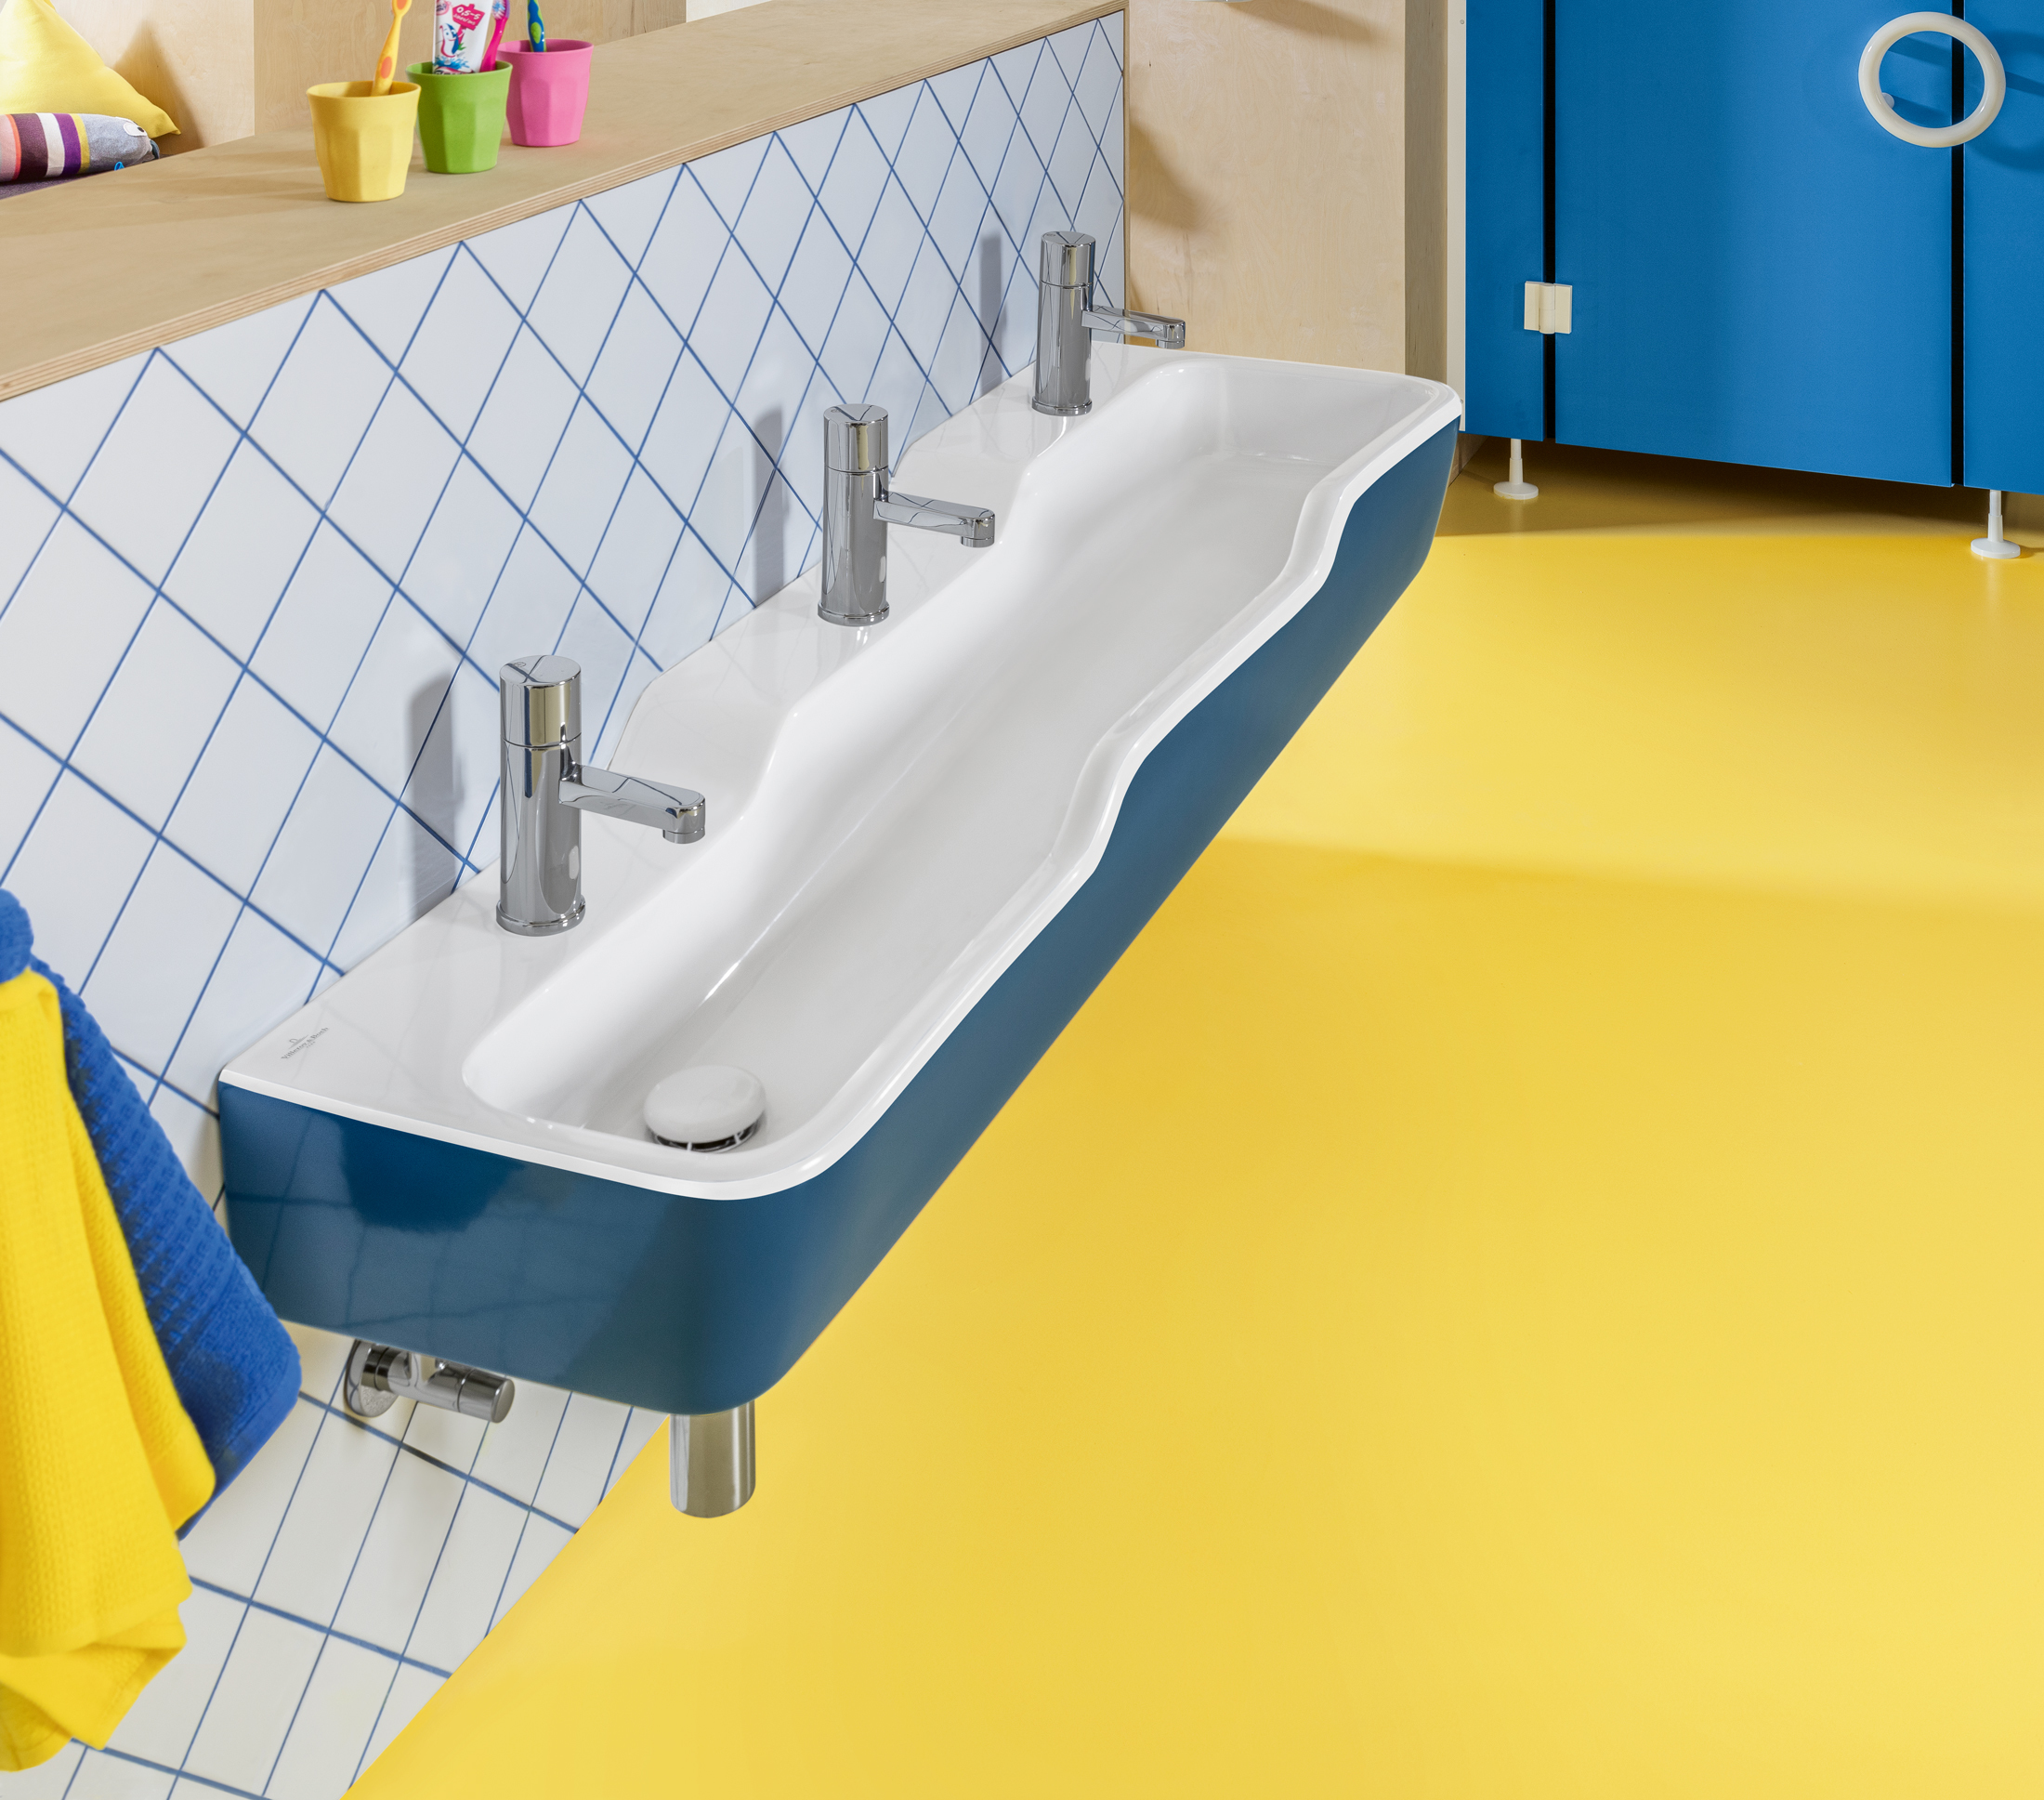 Bad Amaturen Armaturen O Novo Kids Von Villeroy And Boch Bad And Wellness